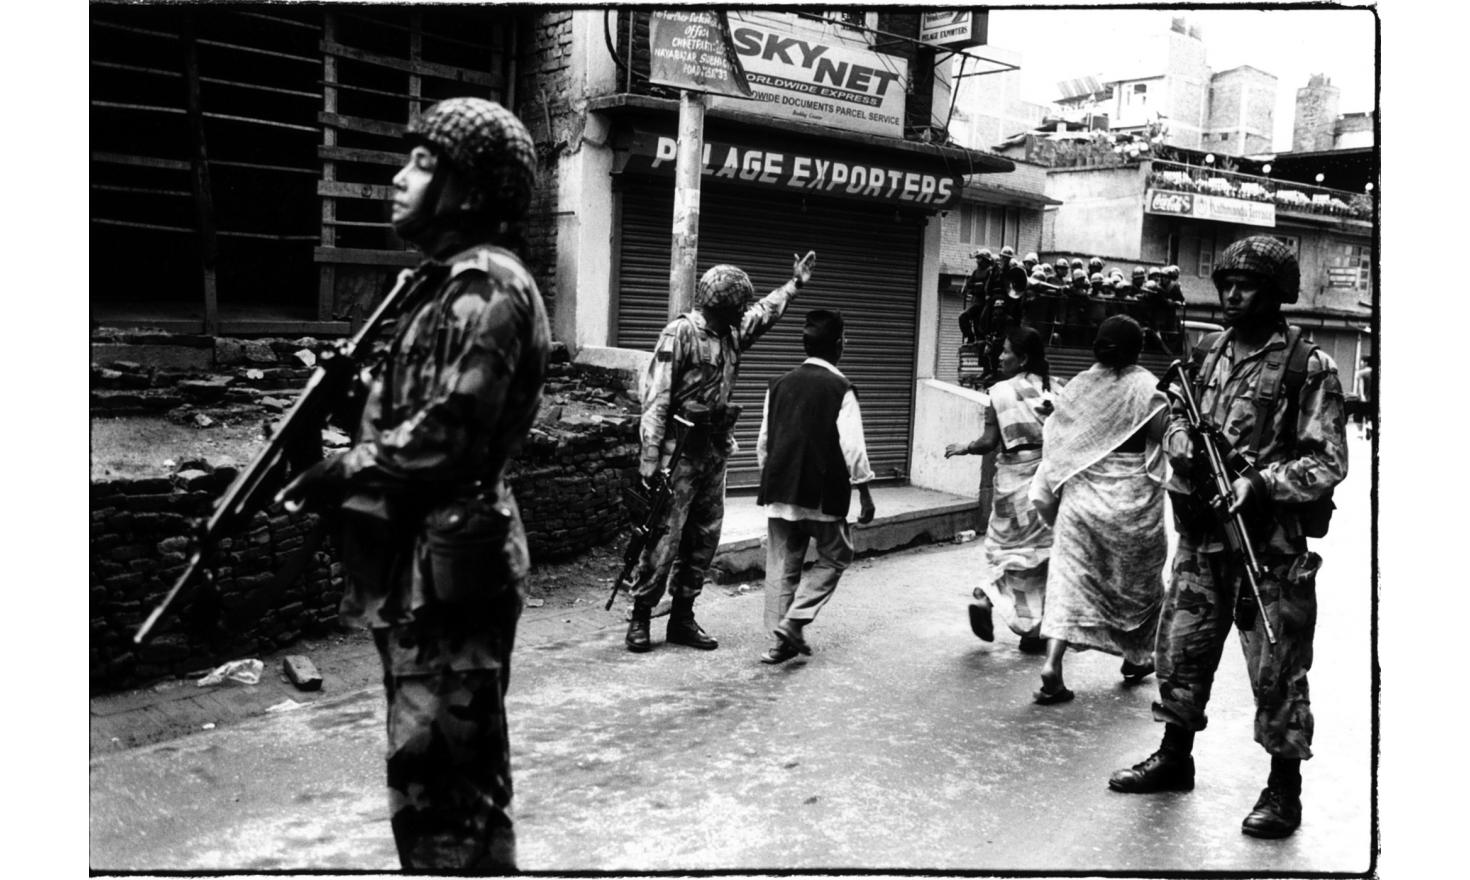 Ghurkas soldiers are in charge of the streets security, since curfew has been declared the days following the royal tragedy, Kathmandu June 2001